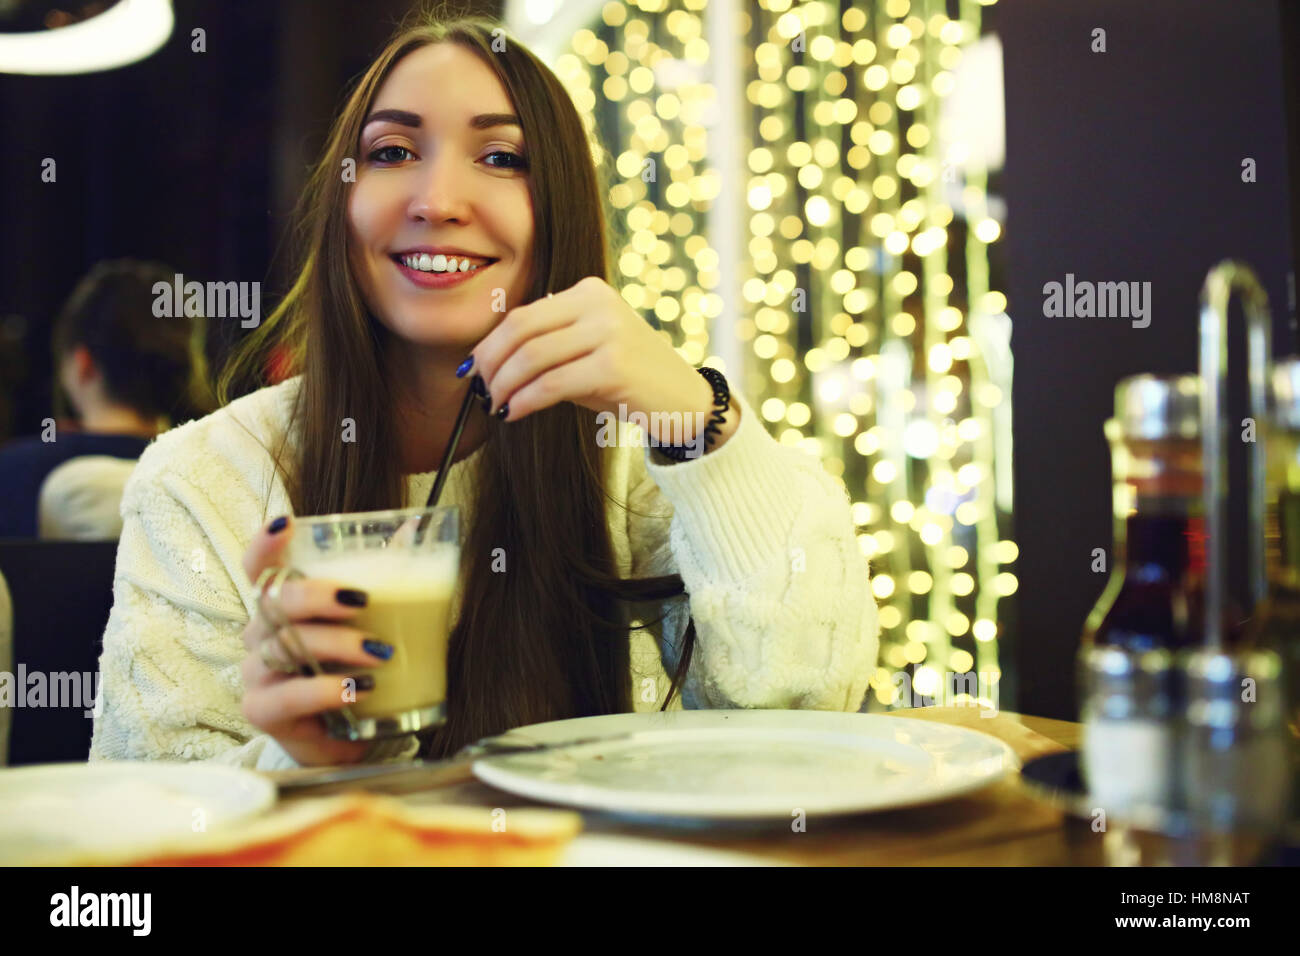 Beautiful young woman drinking coffee at cafe. Tonned. Selective focus. - Stock Image